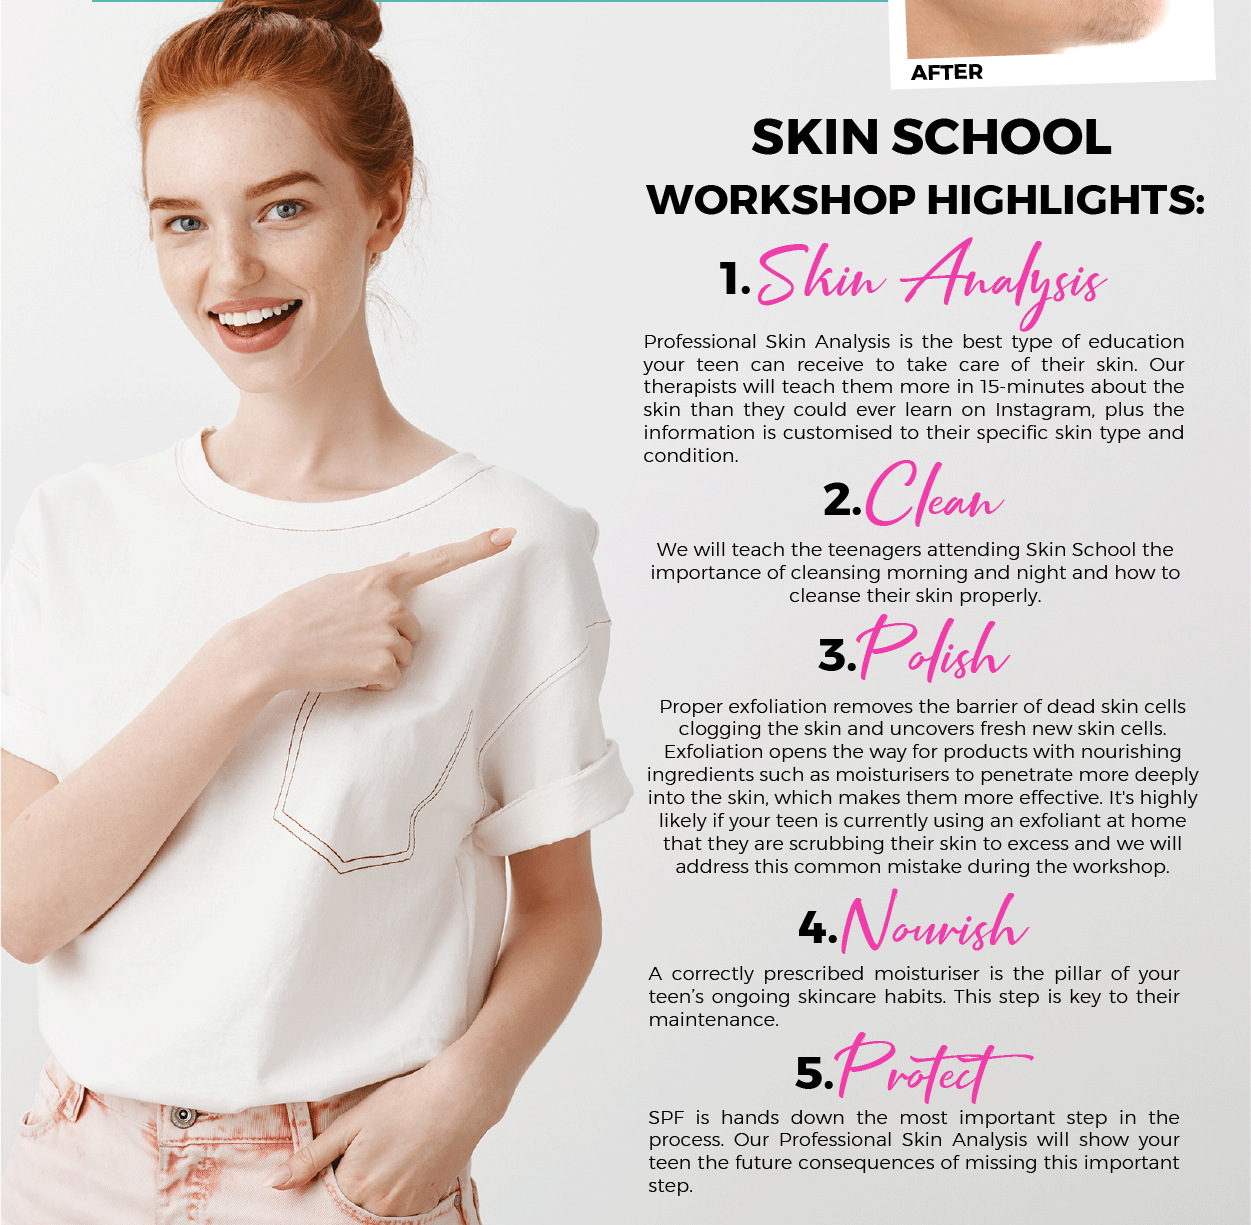 Skin School Highlights